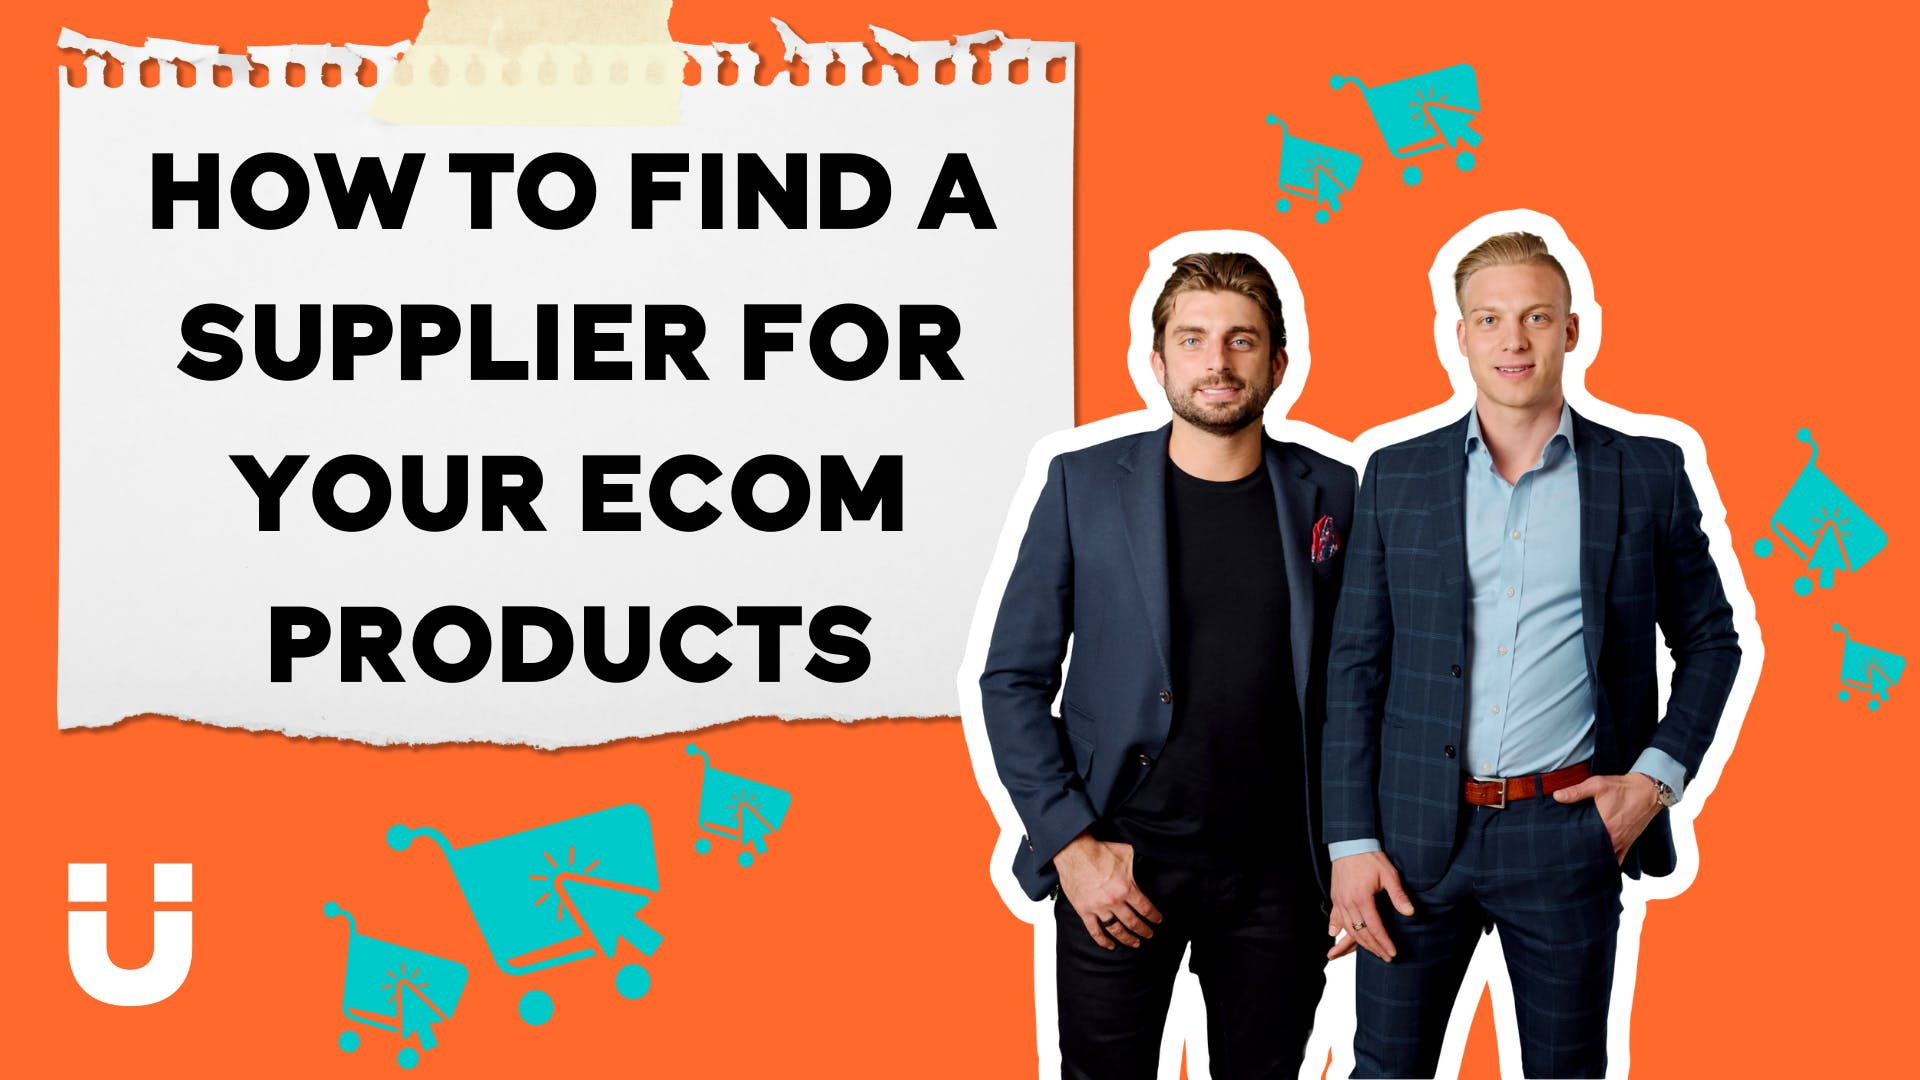 Sourci Founders Giovanni Pino and Ellie Vaisman chat about how to find the perfect supplier for your ecommerce products!